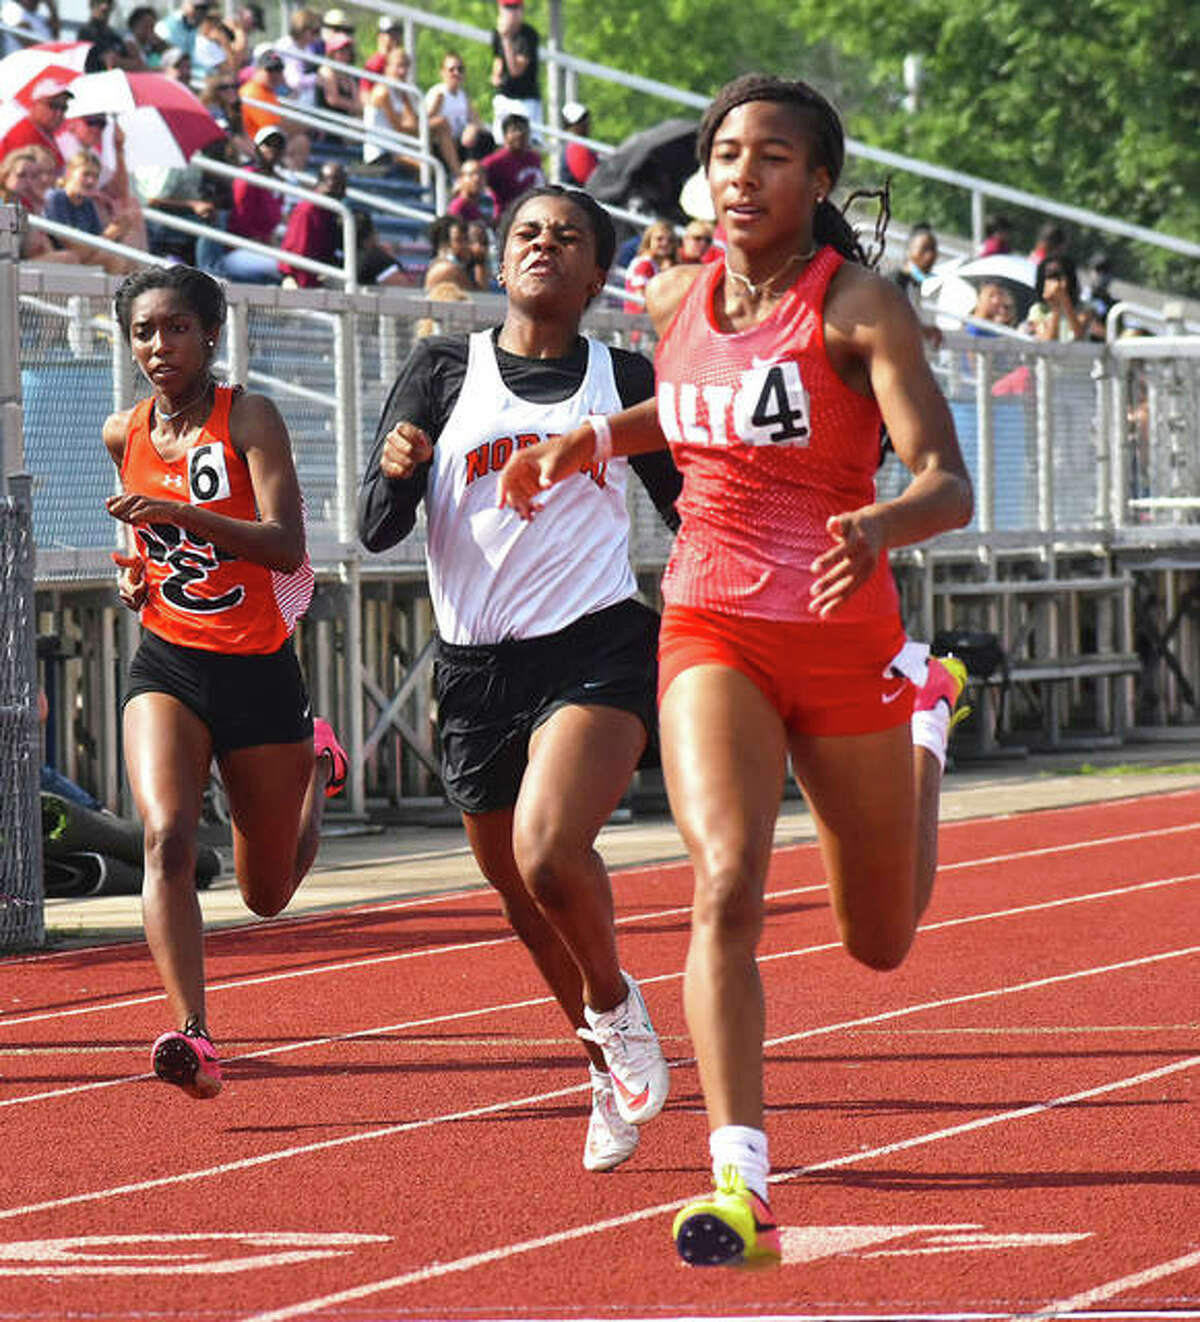 Alton's Renee Raglin (right) approaches the finish line Thursday at the O'Fallon Class 3A Sectional, where she won both the 100 and 200 meters to advance to the state meet in both events next week at Charleston.